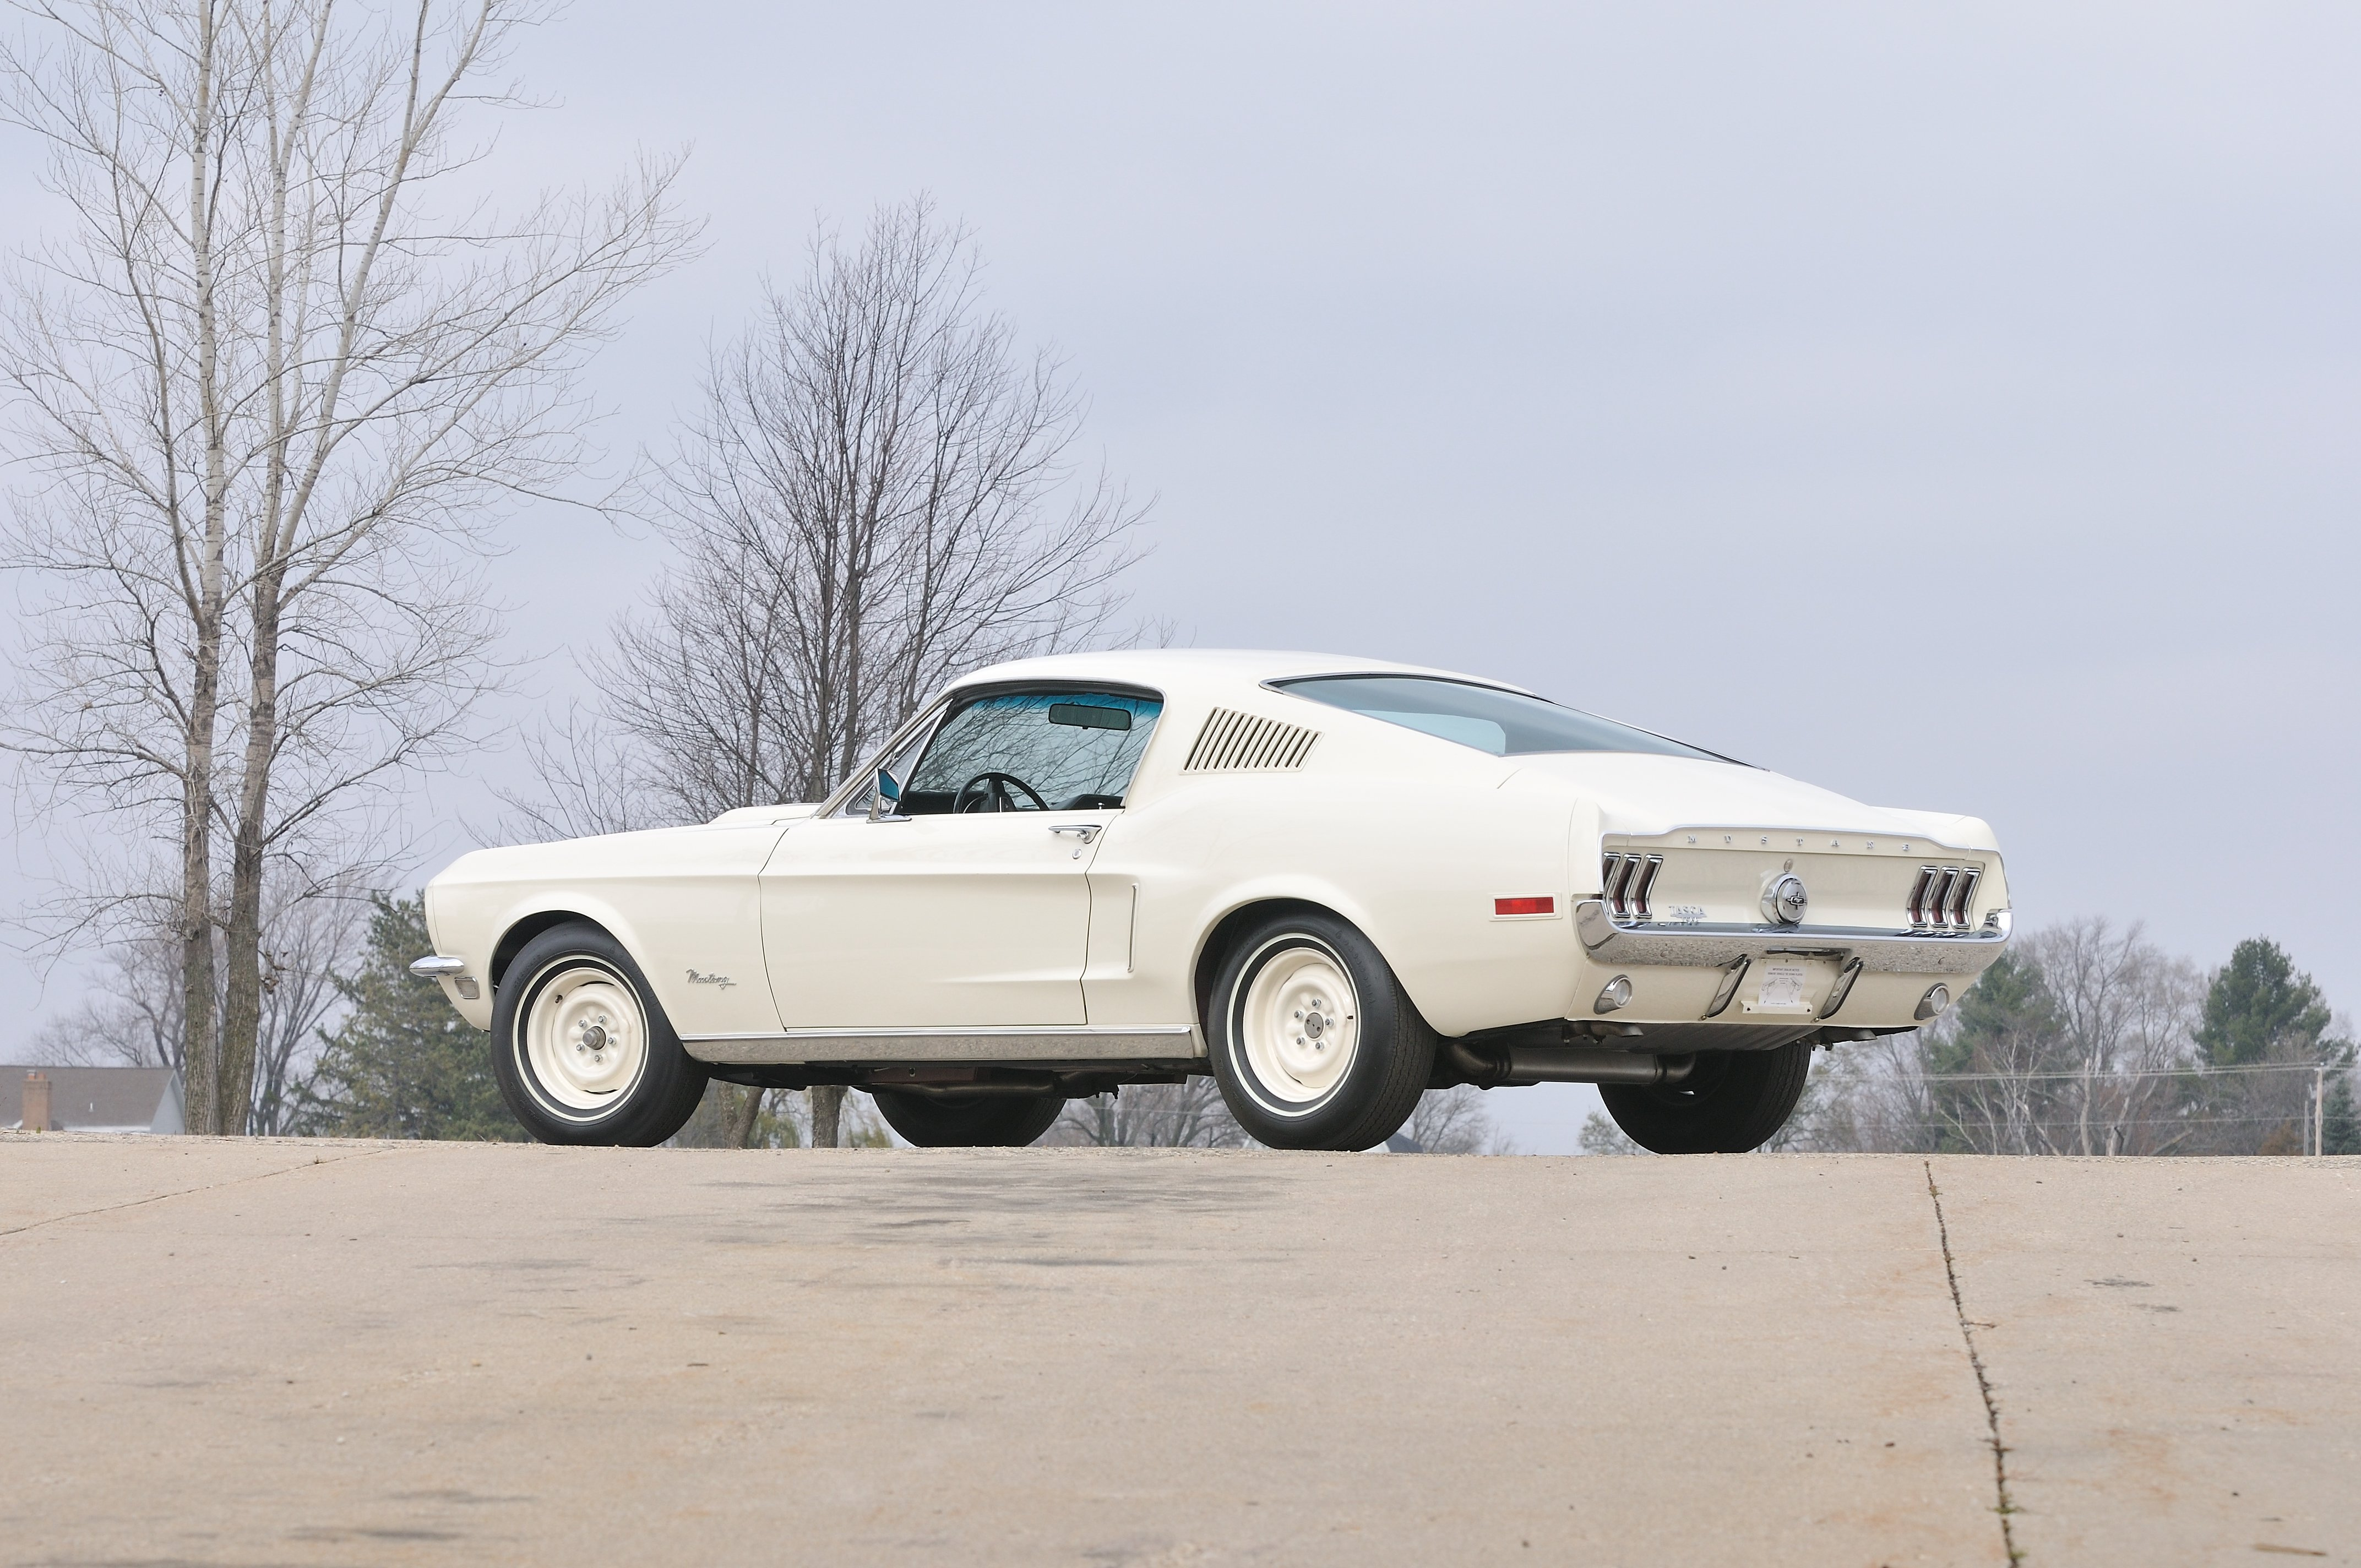 1968 ford mustang lightweight white muscle classic old usa 4288x2848 02 wallpaper 4288x2848 653807 wallpaperup